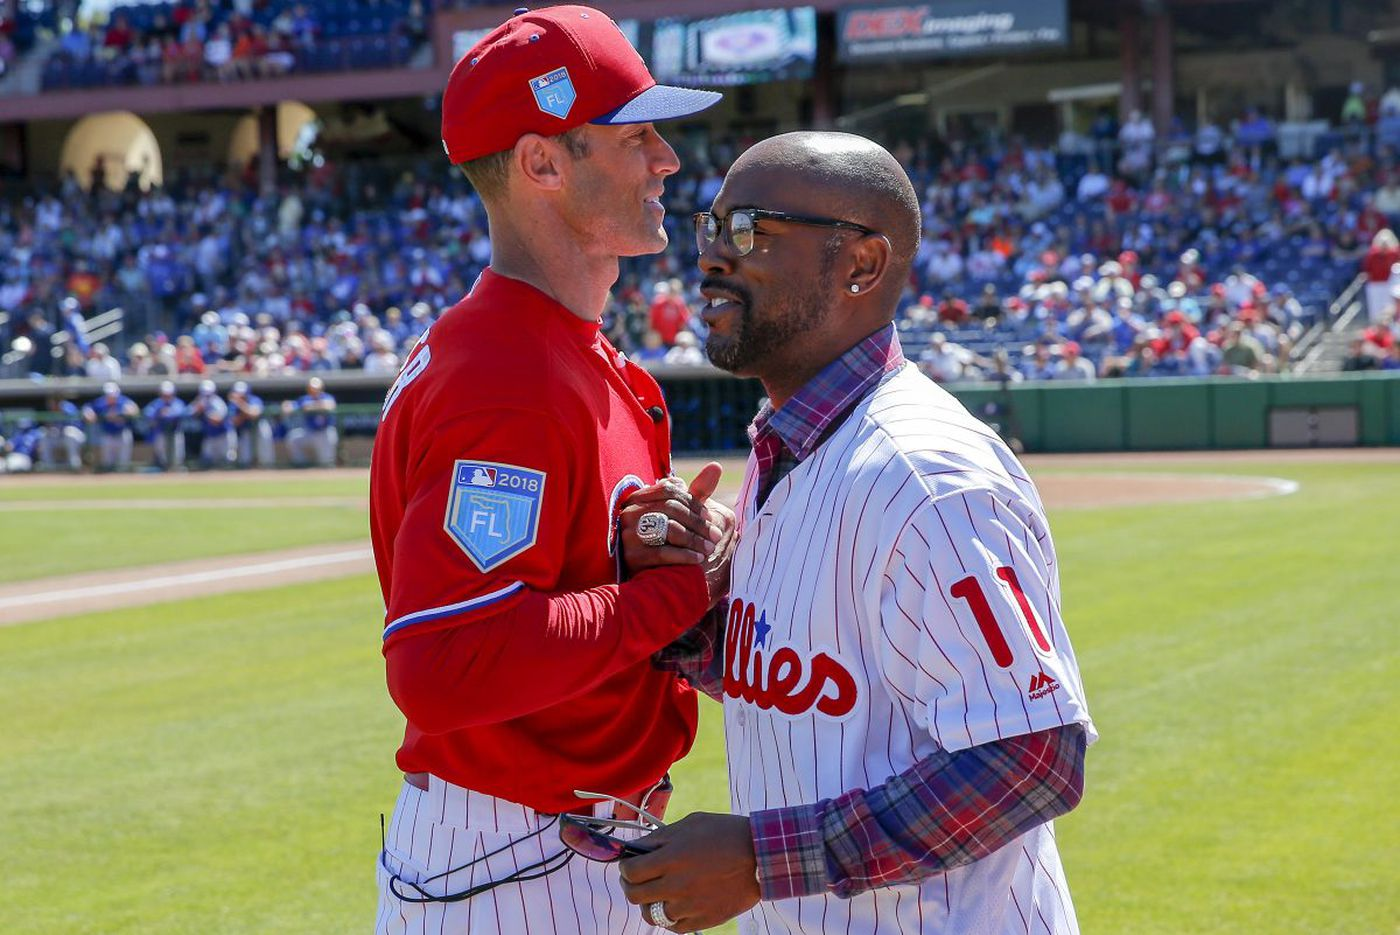 Jimmy Rollins wants to retire as a Phillie, but only his way